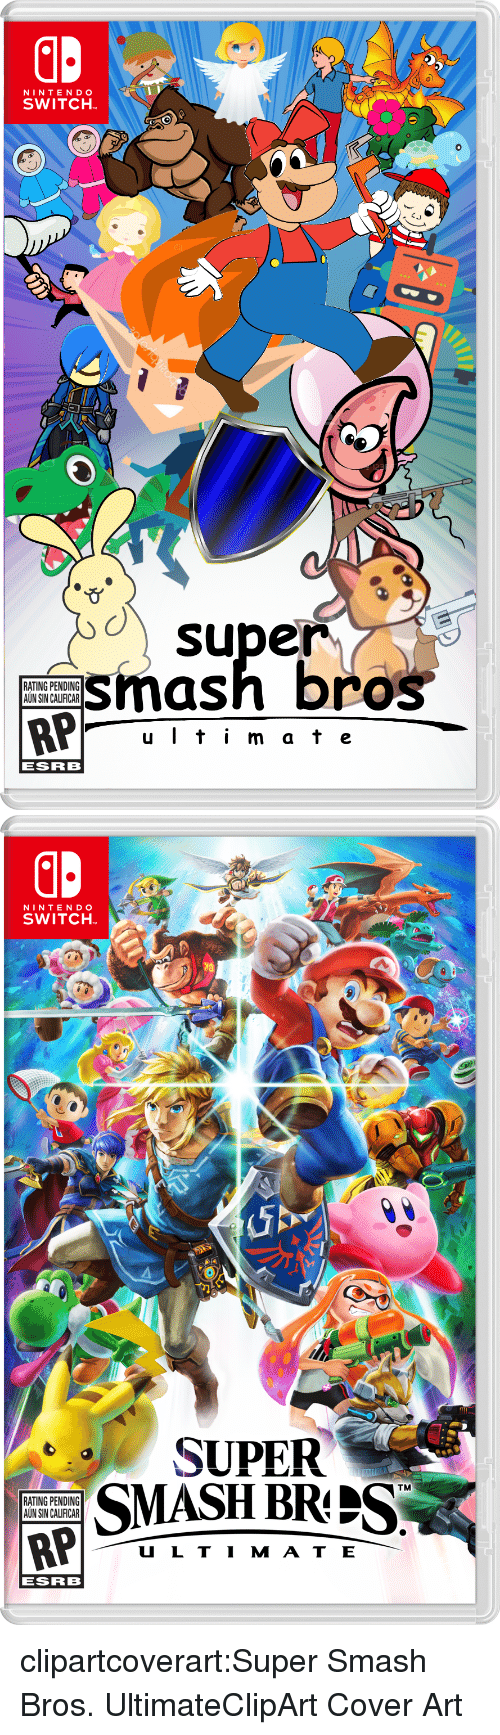 esrb: NINTENDO  SWITCH  o super  smash bros  RATING PENDING  AUN SIN CALIFICAR  u Iti m at e  ESRB   NINTENDO  SWITCH  SUPER  SMASH BRIS  TM  RATING PENDING  AUN SIN CALIFICAR  U L TI M AT E  ESRB clipartcoverart:Super Smash Bros. UltimateClipArt Cover Art